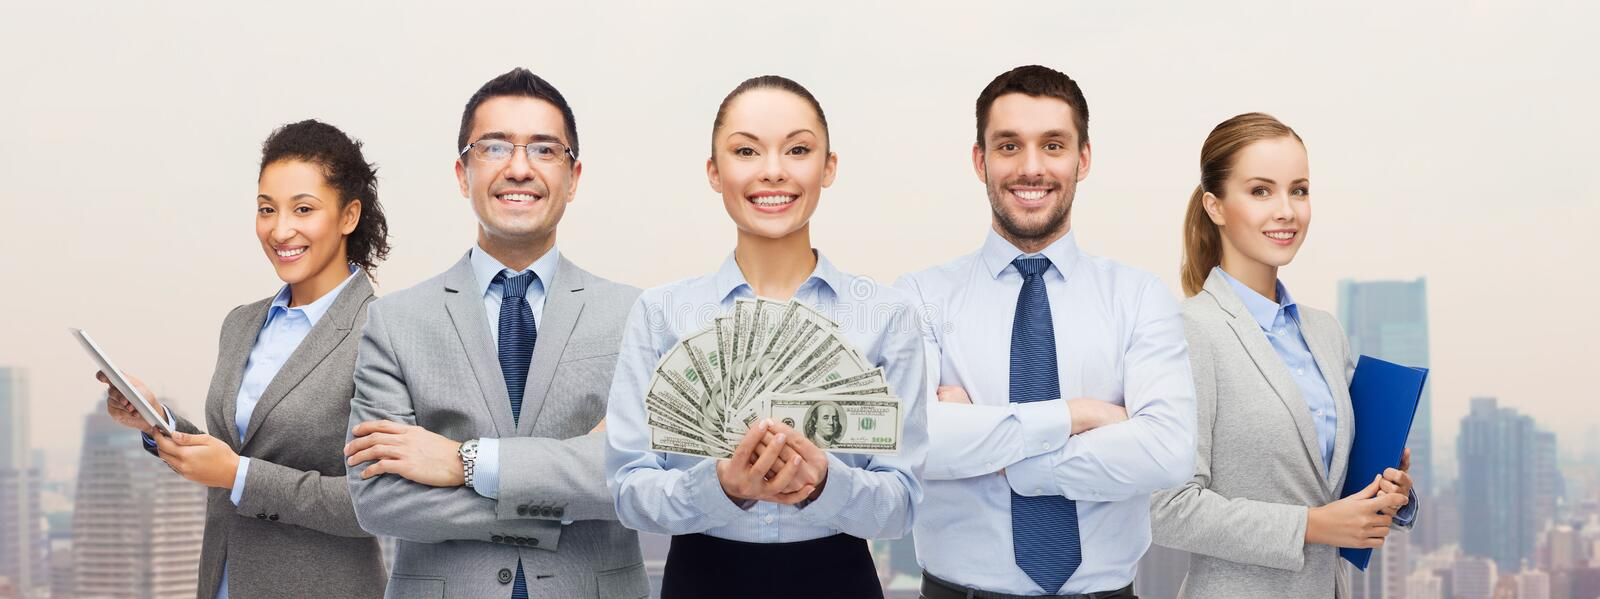 Group of business people with dollar cash money royalty free stock photos